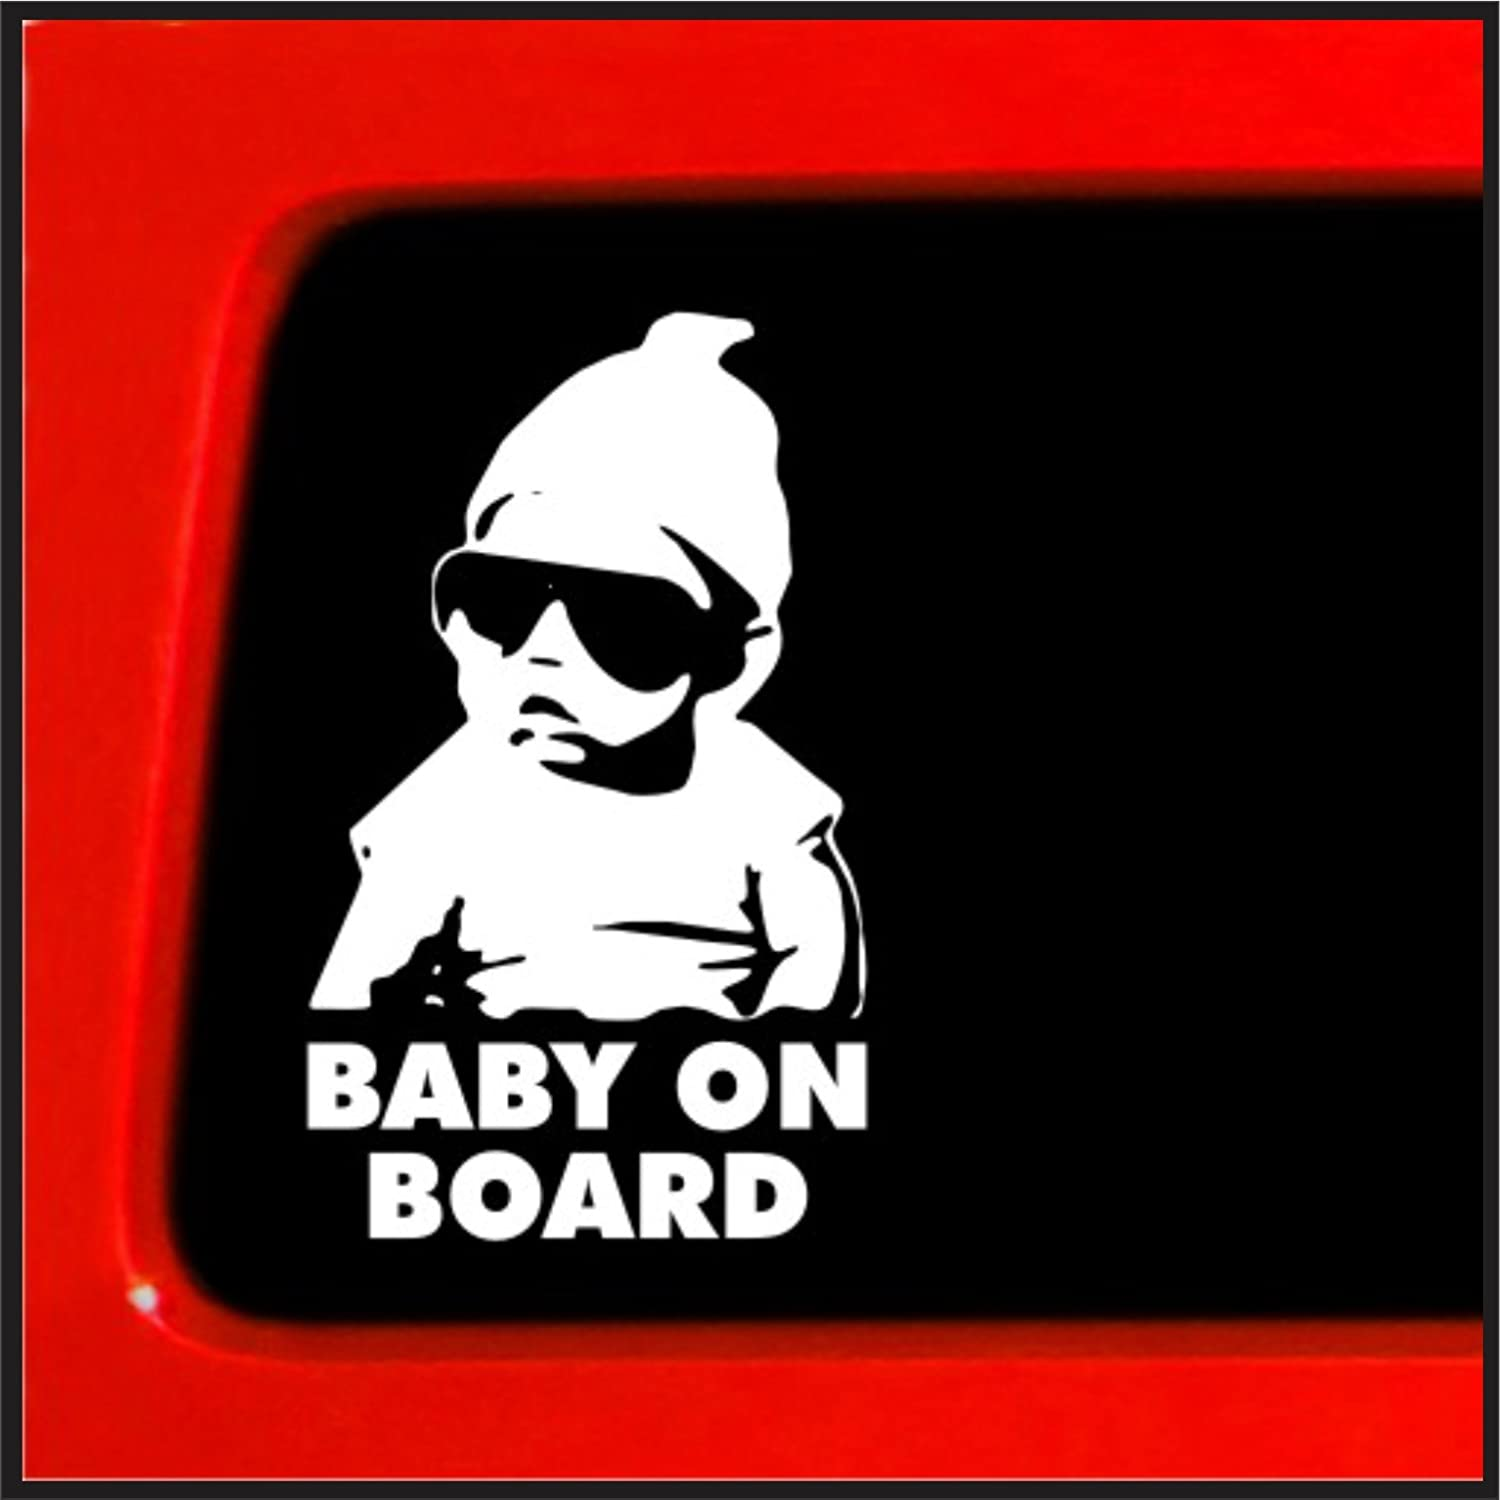 Baby on Board vinyl bumper sticker car decal Carlos Hangover funny car laptop